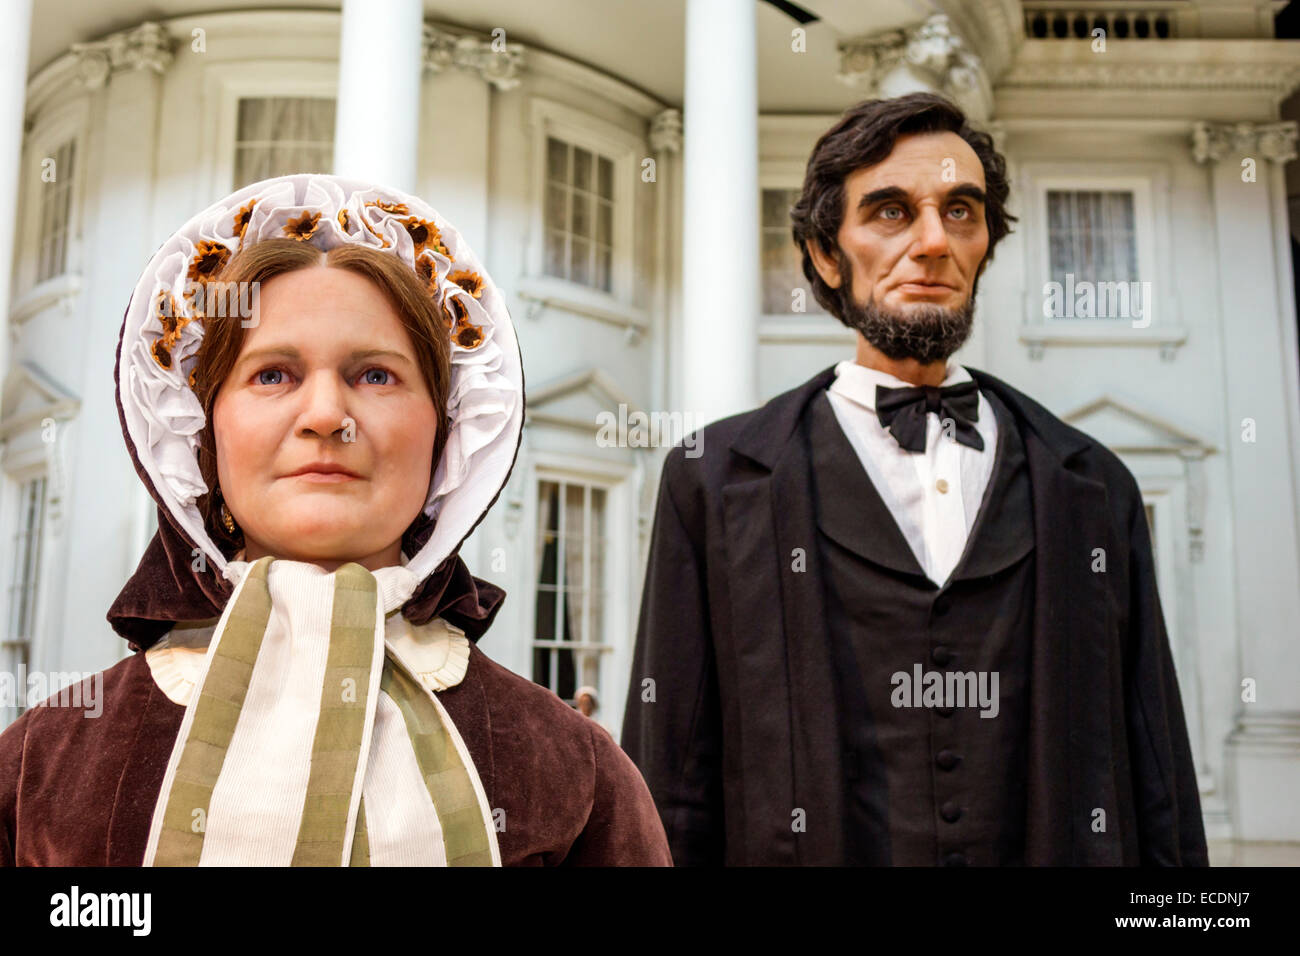 Jc Lewis Ford >> Mary Todd Abraham Lincoln Photos & Mary Todd Abraham Lincoln Images - Alamy